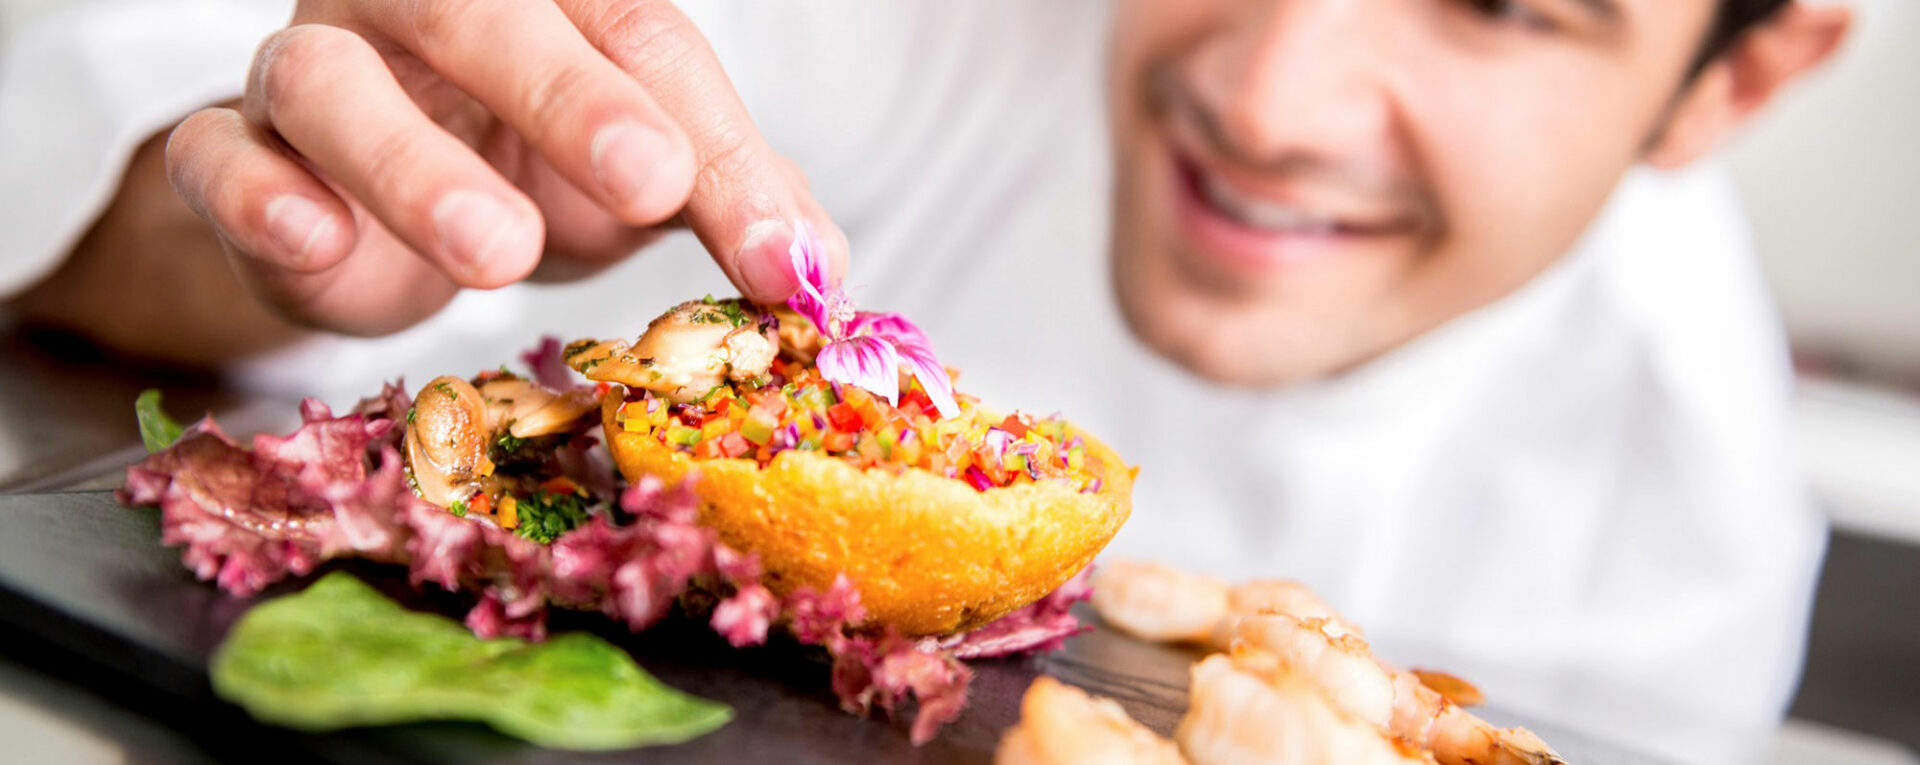 The art of food plating